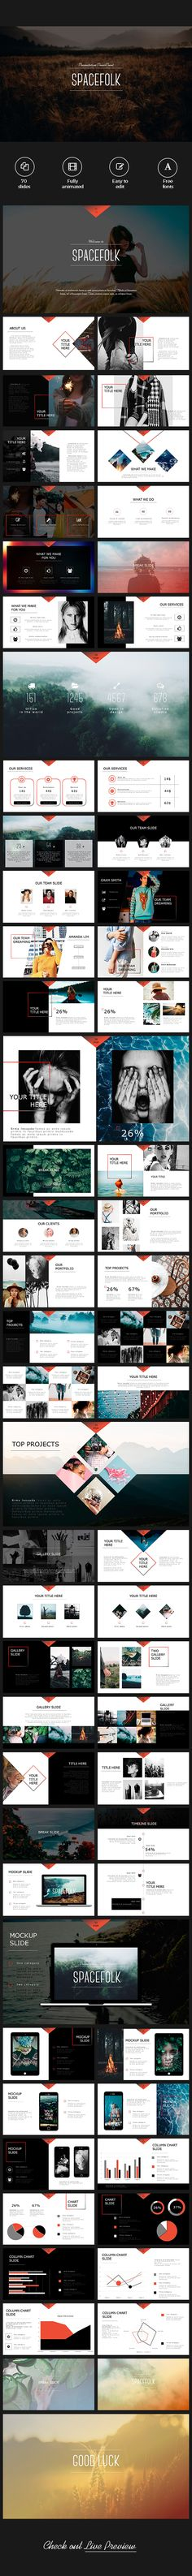 Clean & Professional Spacefolk Presentation  #fashion powerpoint #infographics • Download ➝ https://graphicriver.net/item/clean-professional-spacefolk-presentation/18074008?ref=pxcr